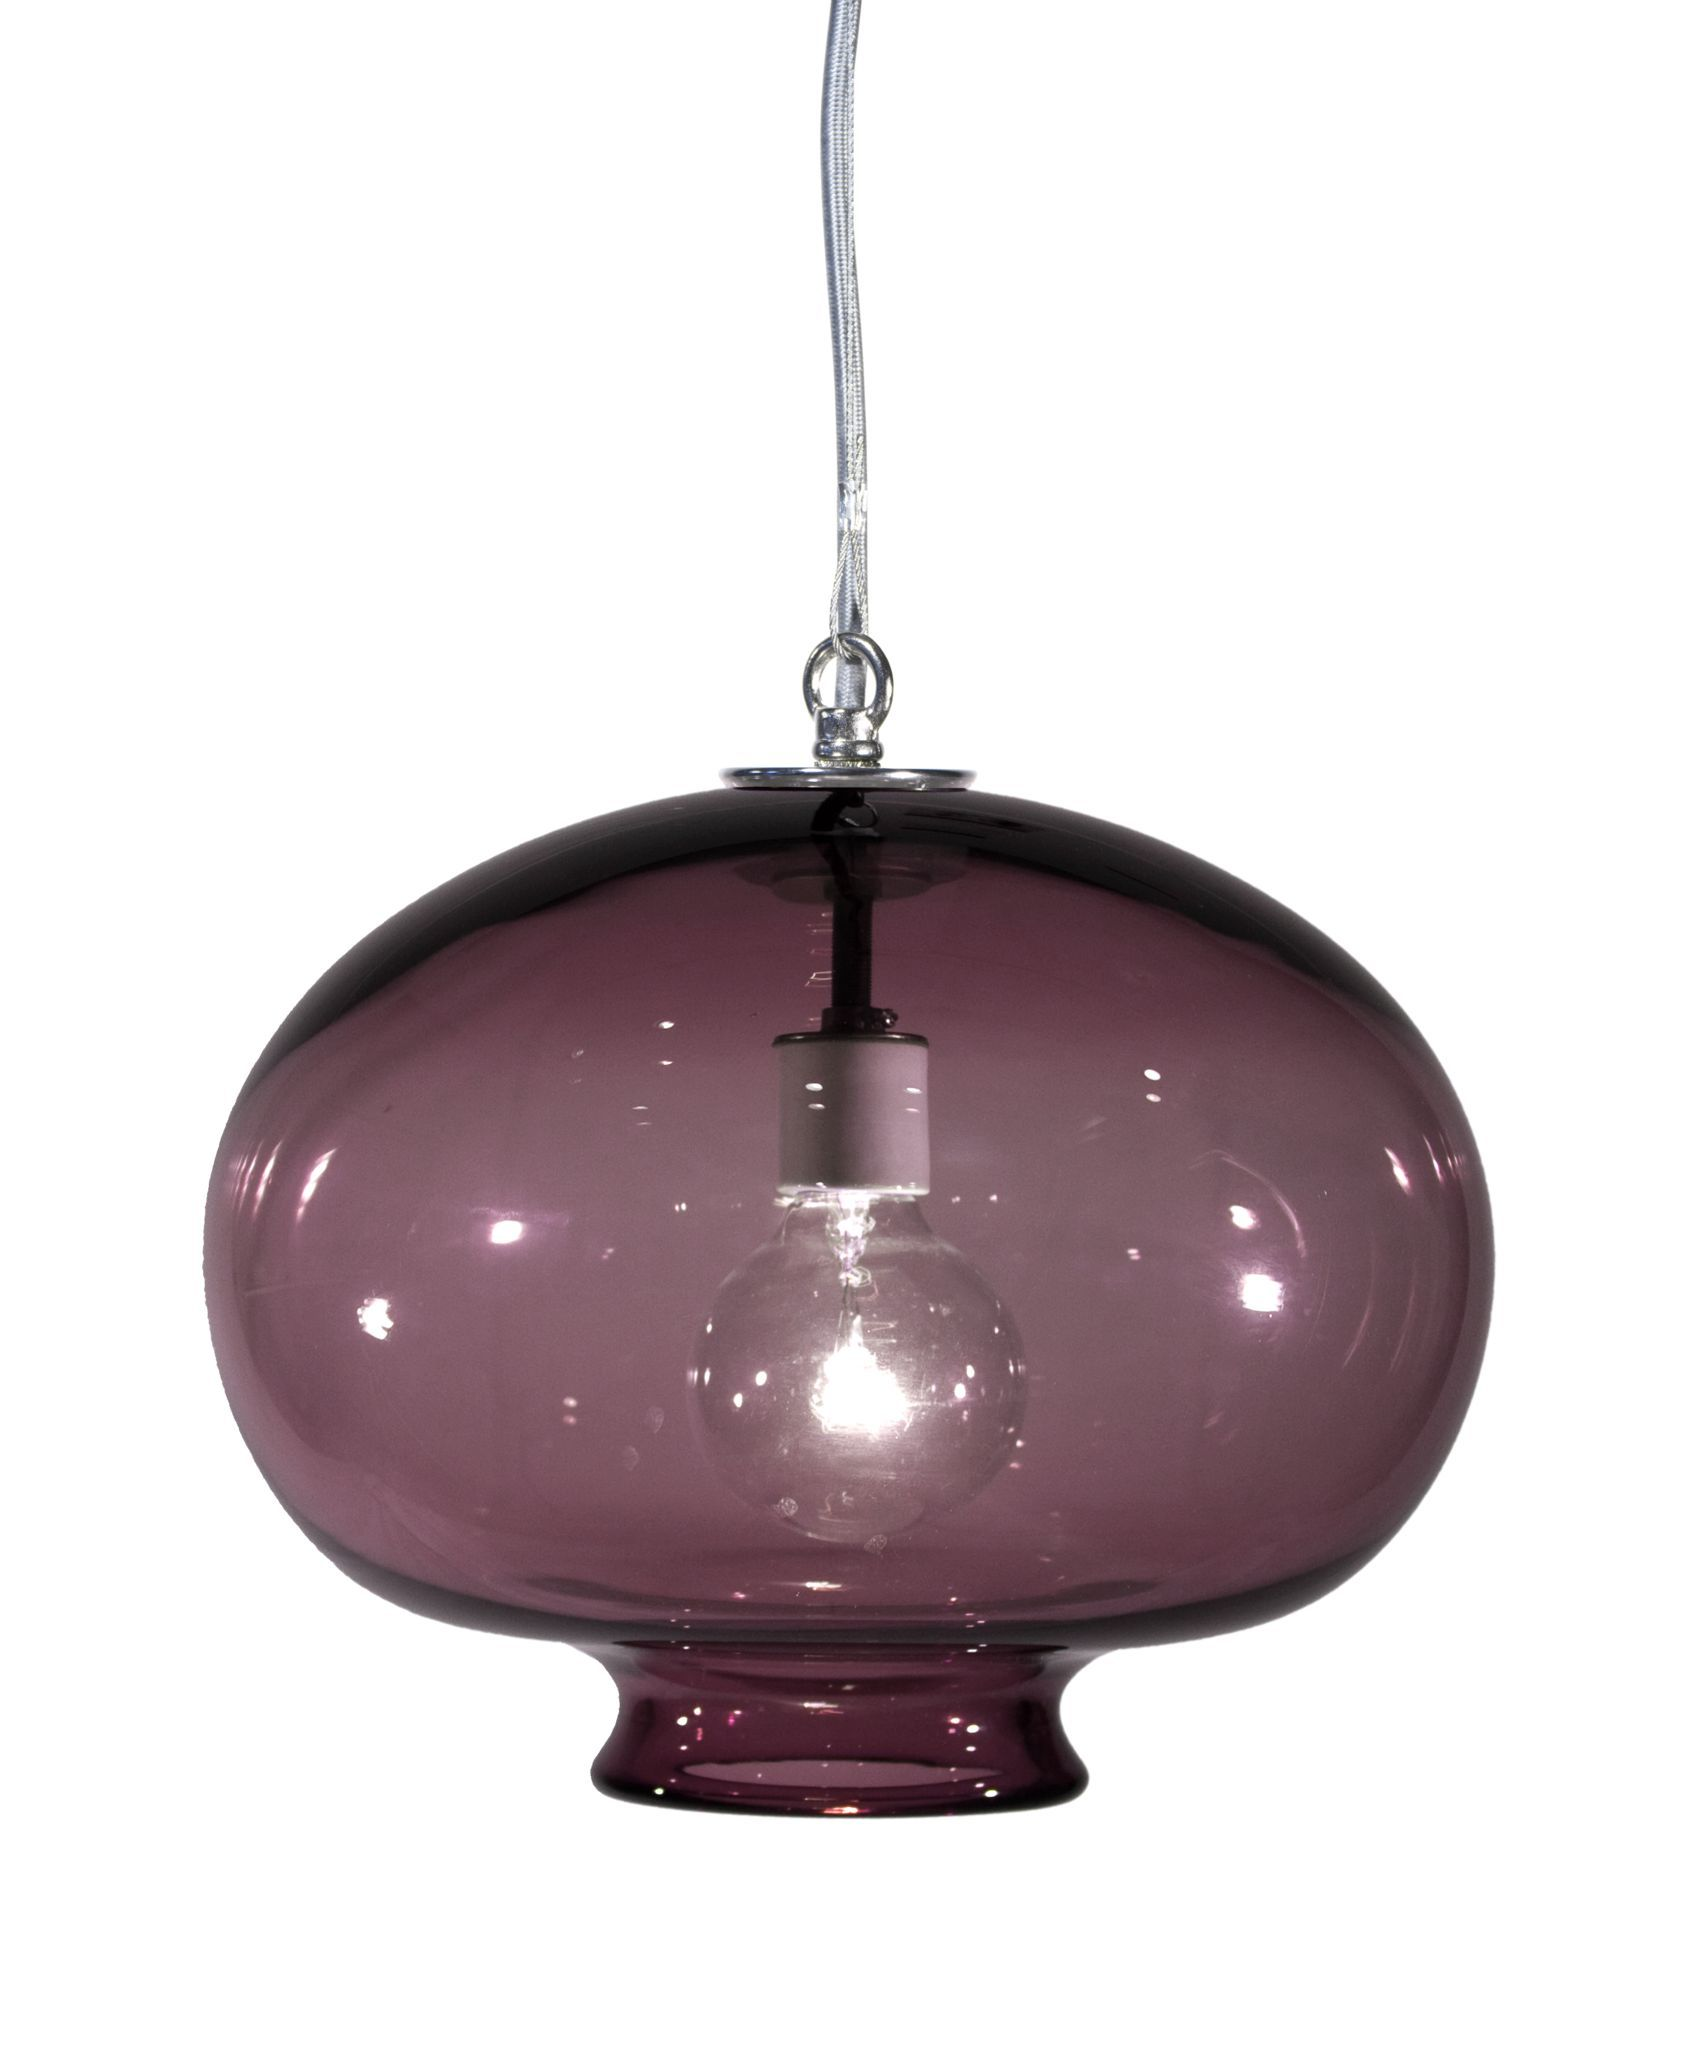 Tempo luxury versuvius lyra hand blown pendant lamp products